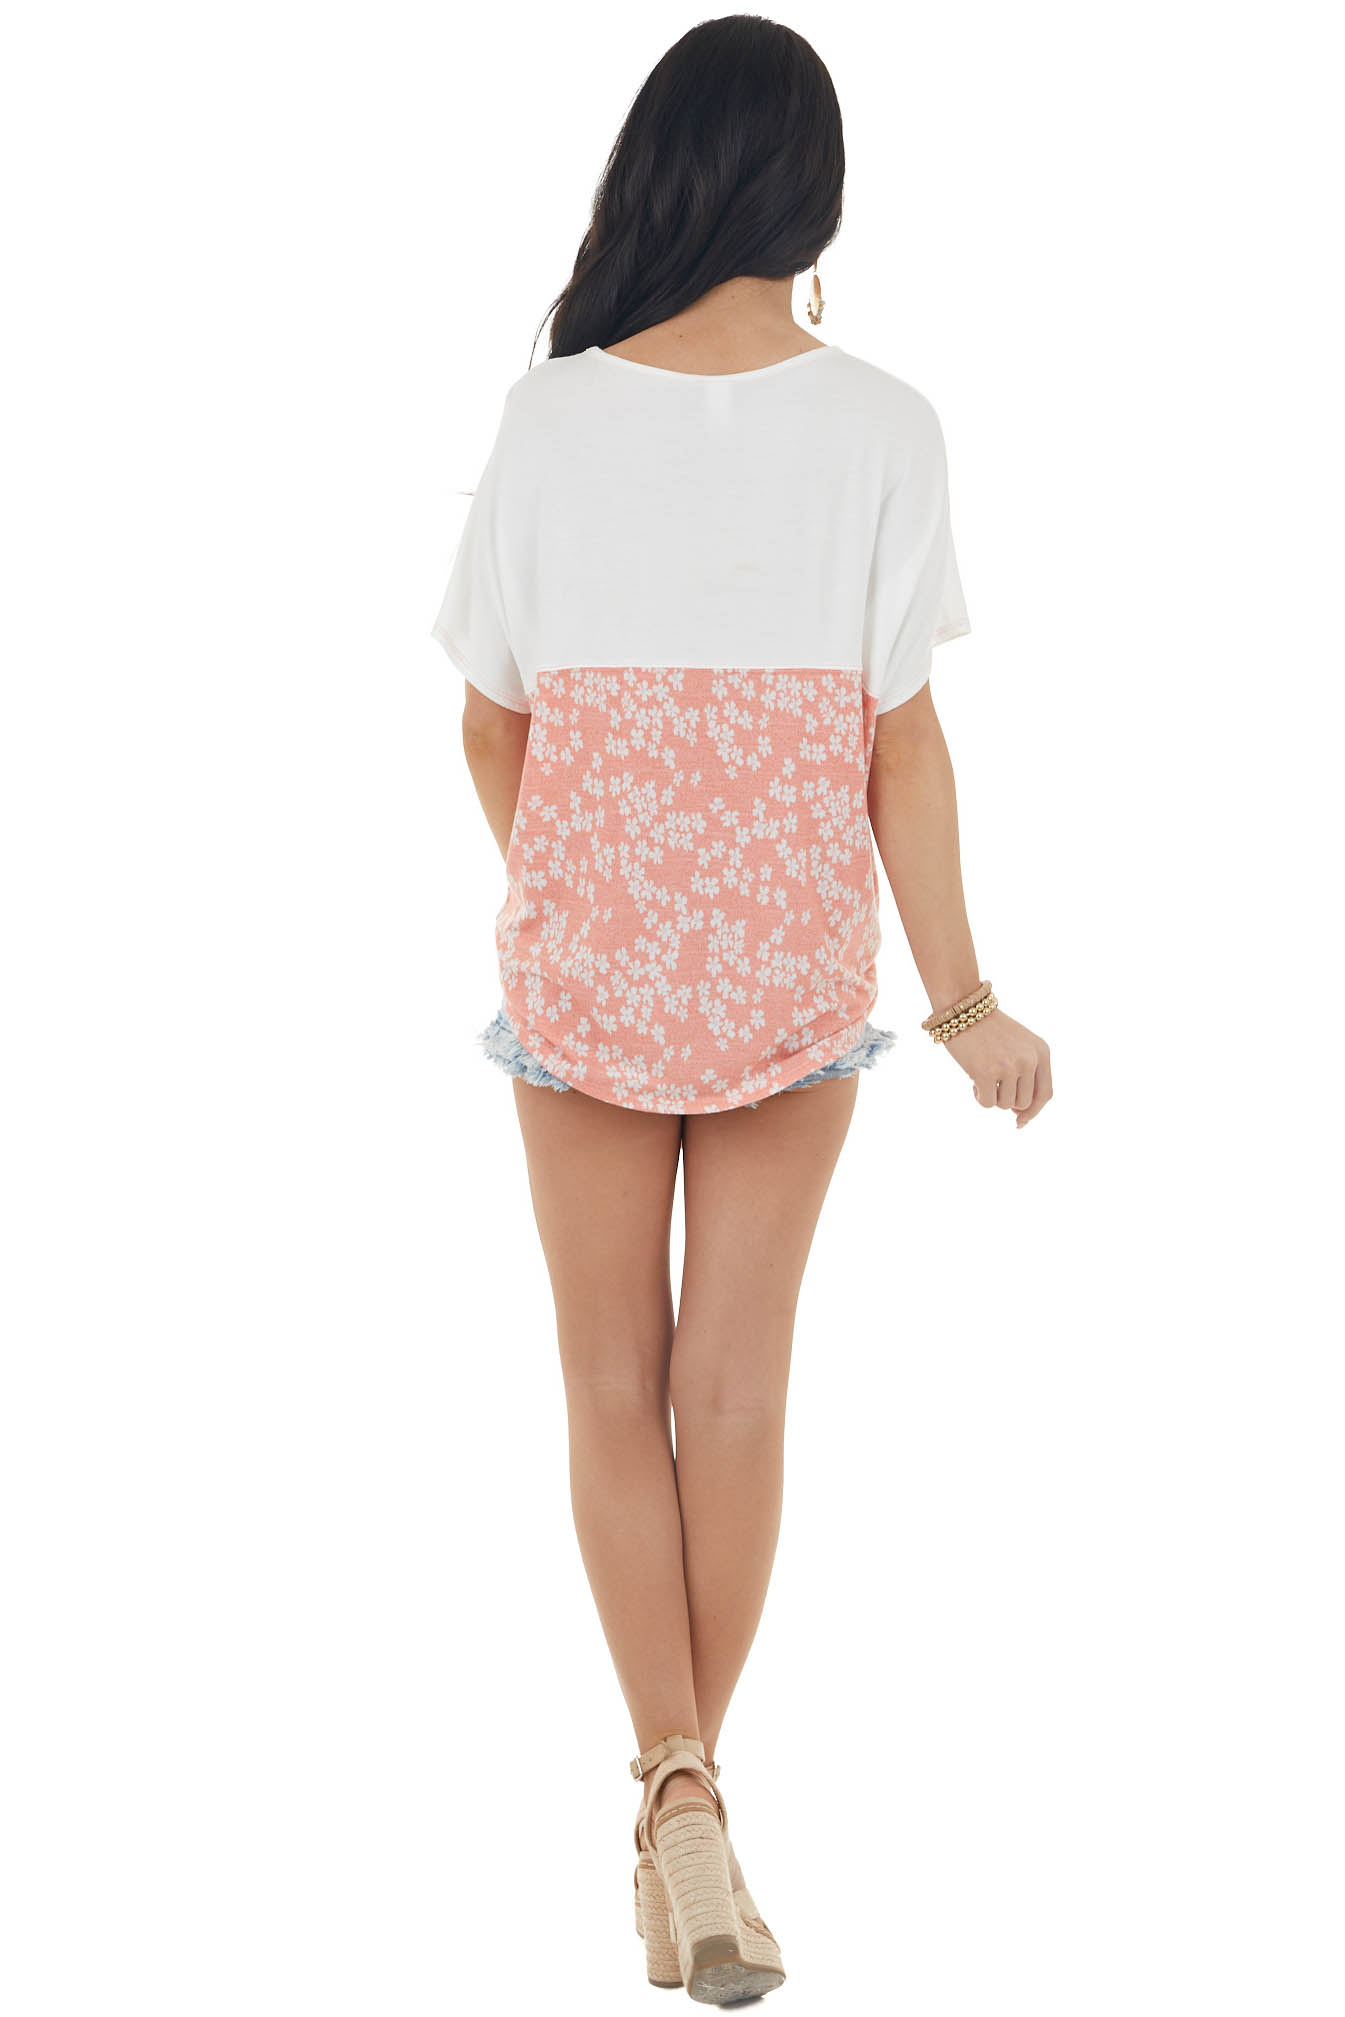 Salmon Floral Print Short Sleeve Knit Top with Front Pocket